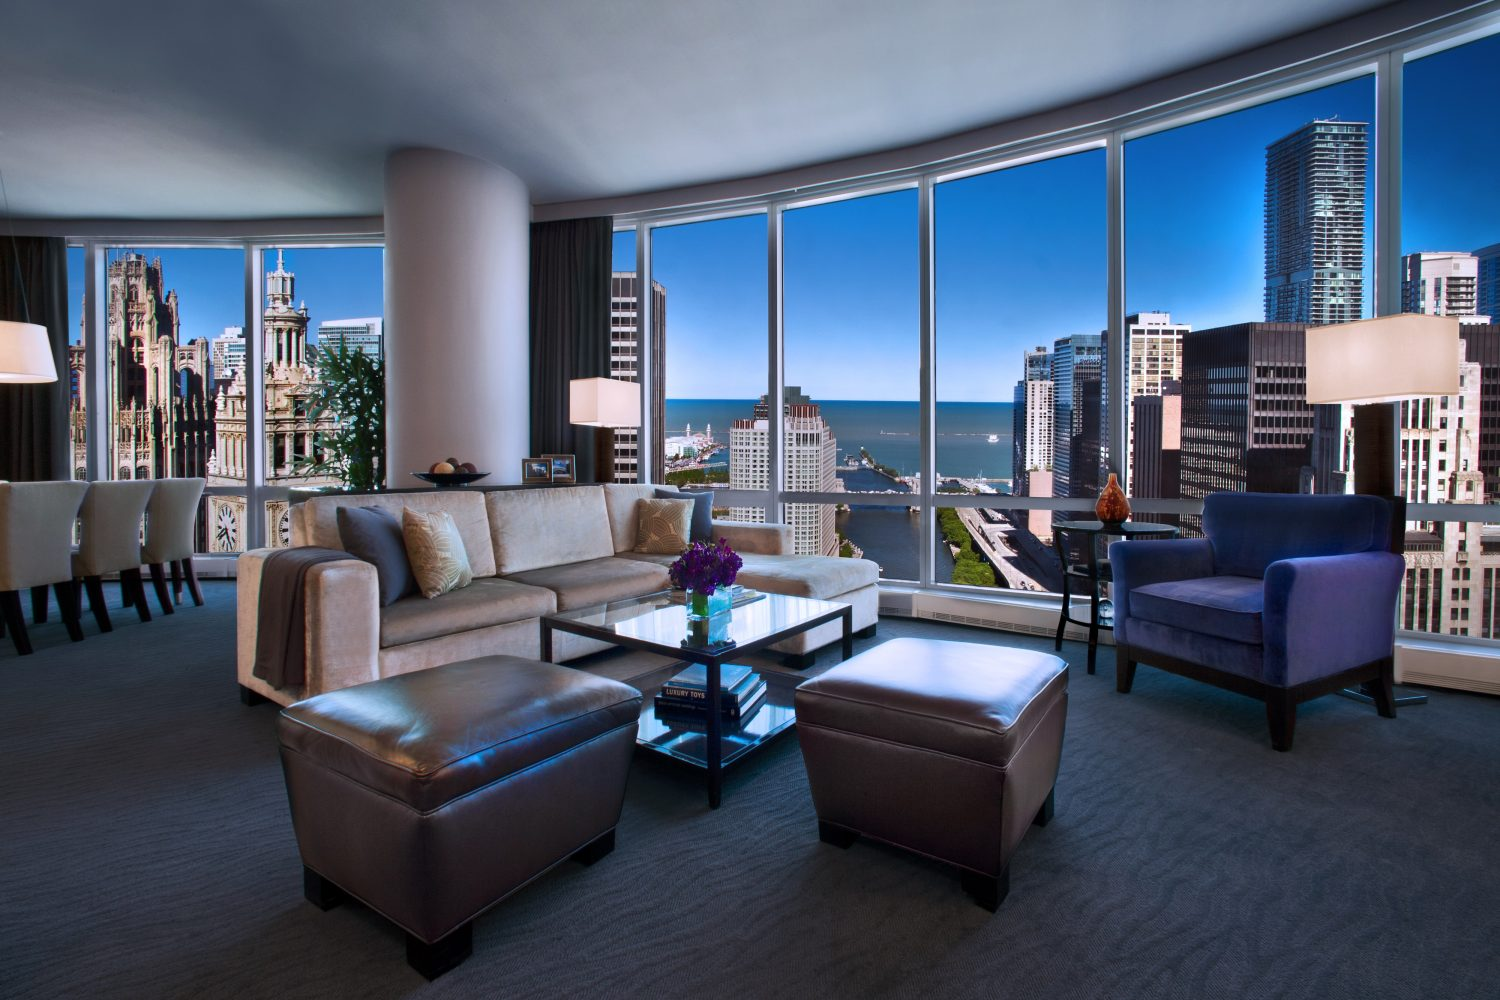 Trump Chicago Grand Deluxe Suite Lake View 2